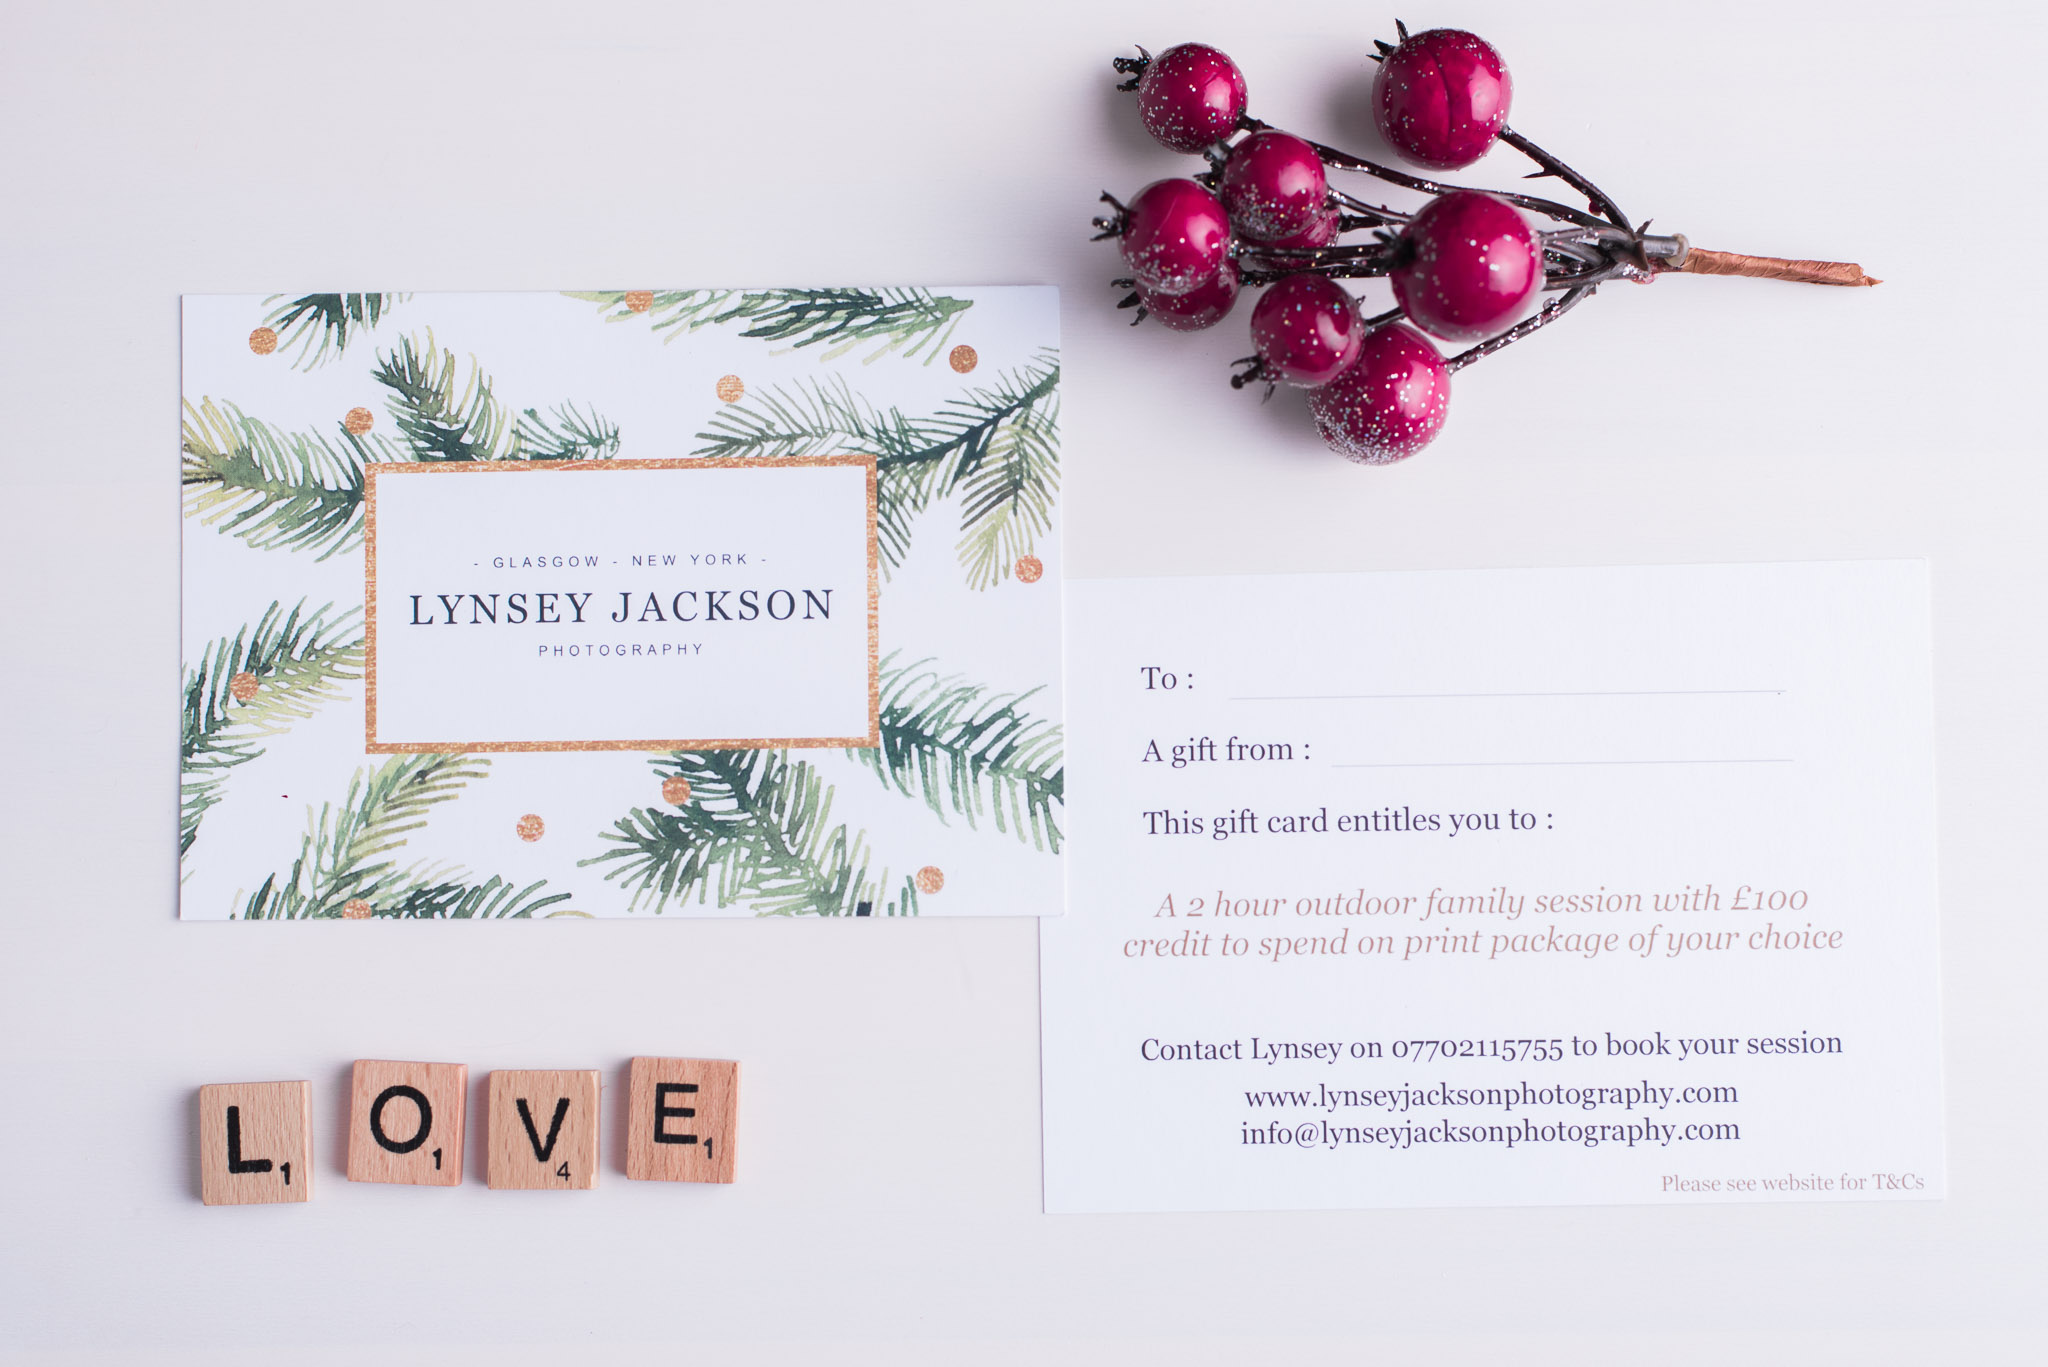 Lynsey Jackson Photography \u2014 Christmas gift voucher couples session